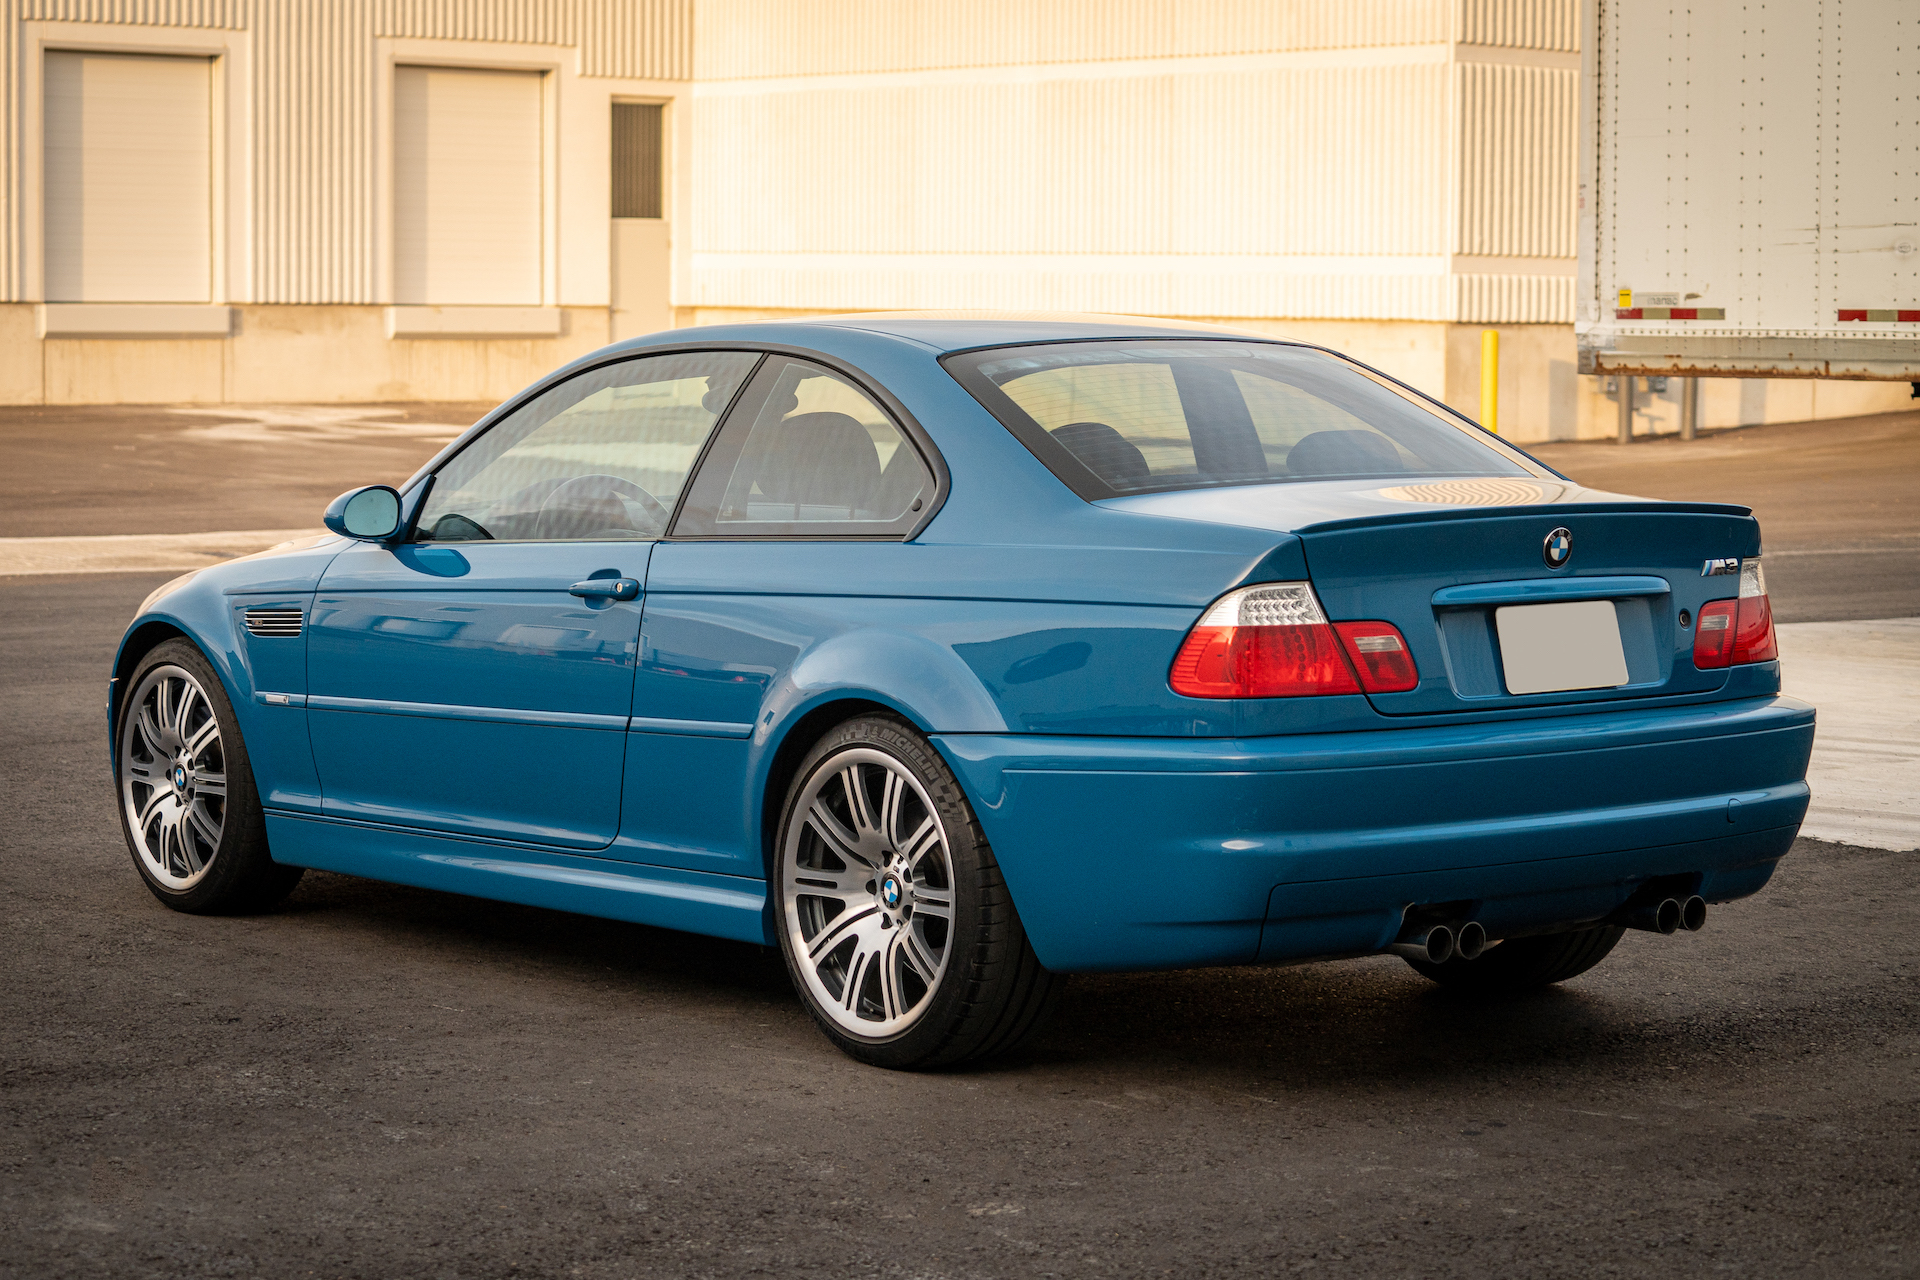 2001 Bmw M3 Sold For 36k Proves The E46 Ages Like Fine Wine Carscoops